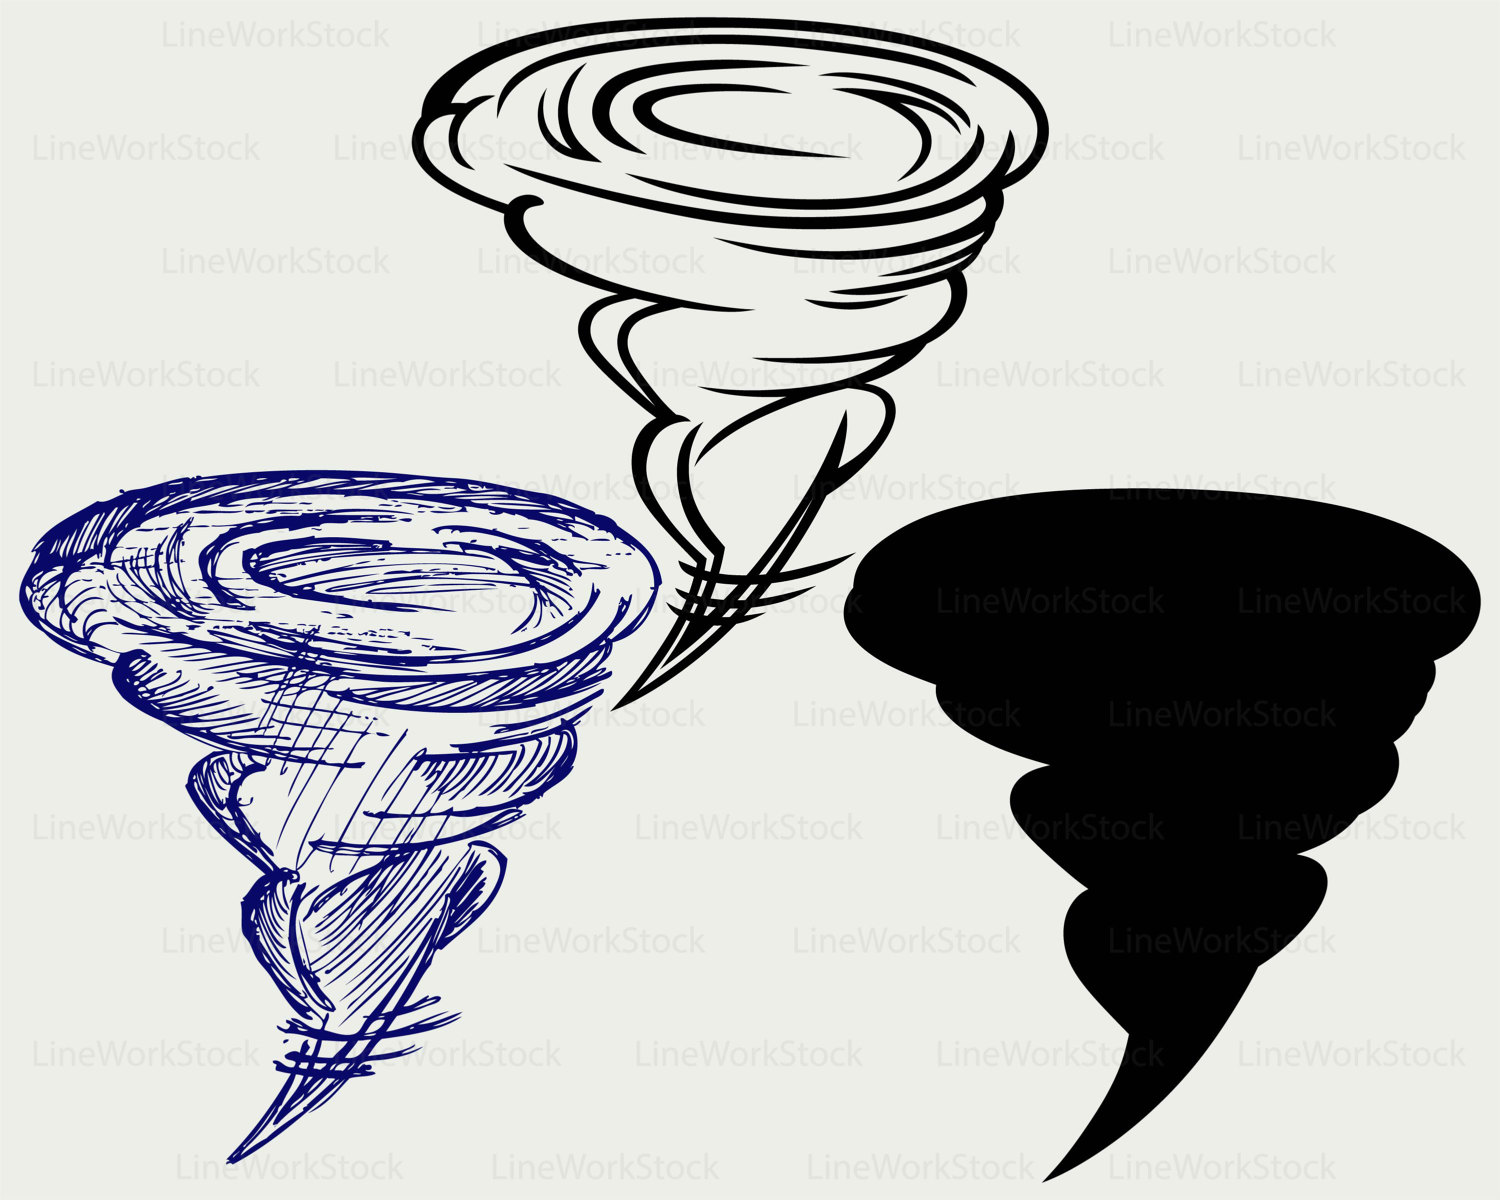 Tornado clipart silhouette Silhouette This clipart file supercell